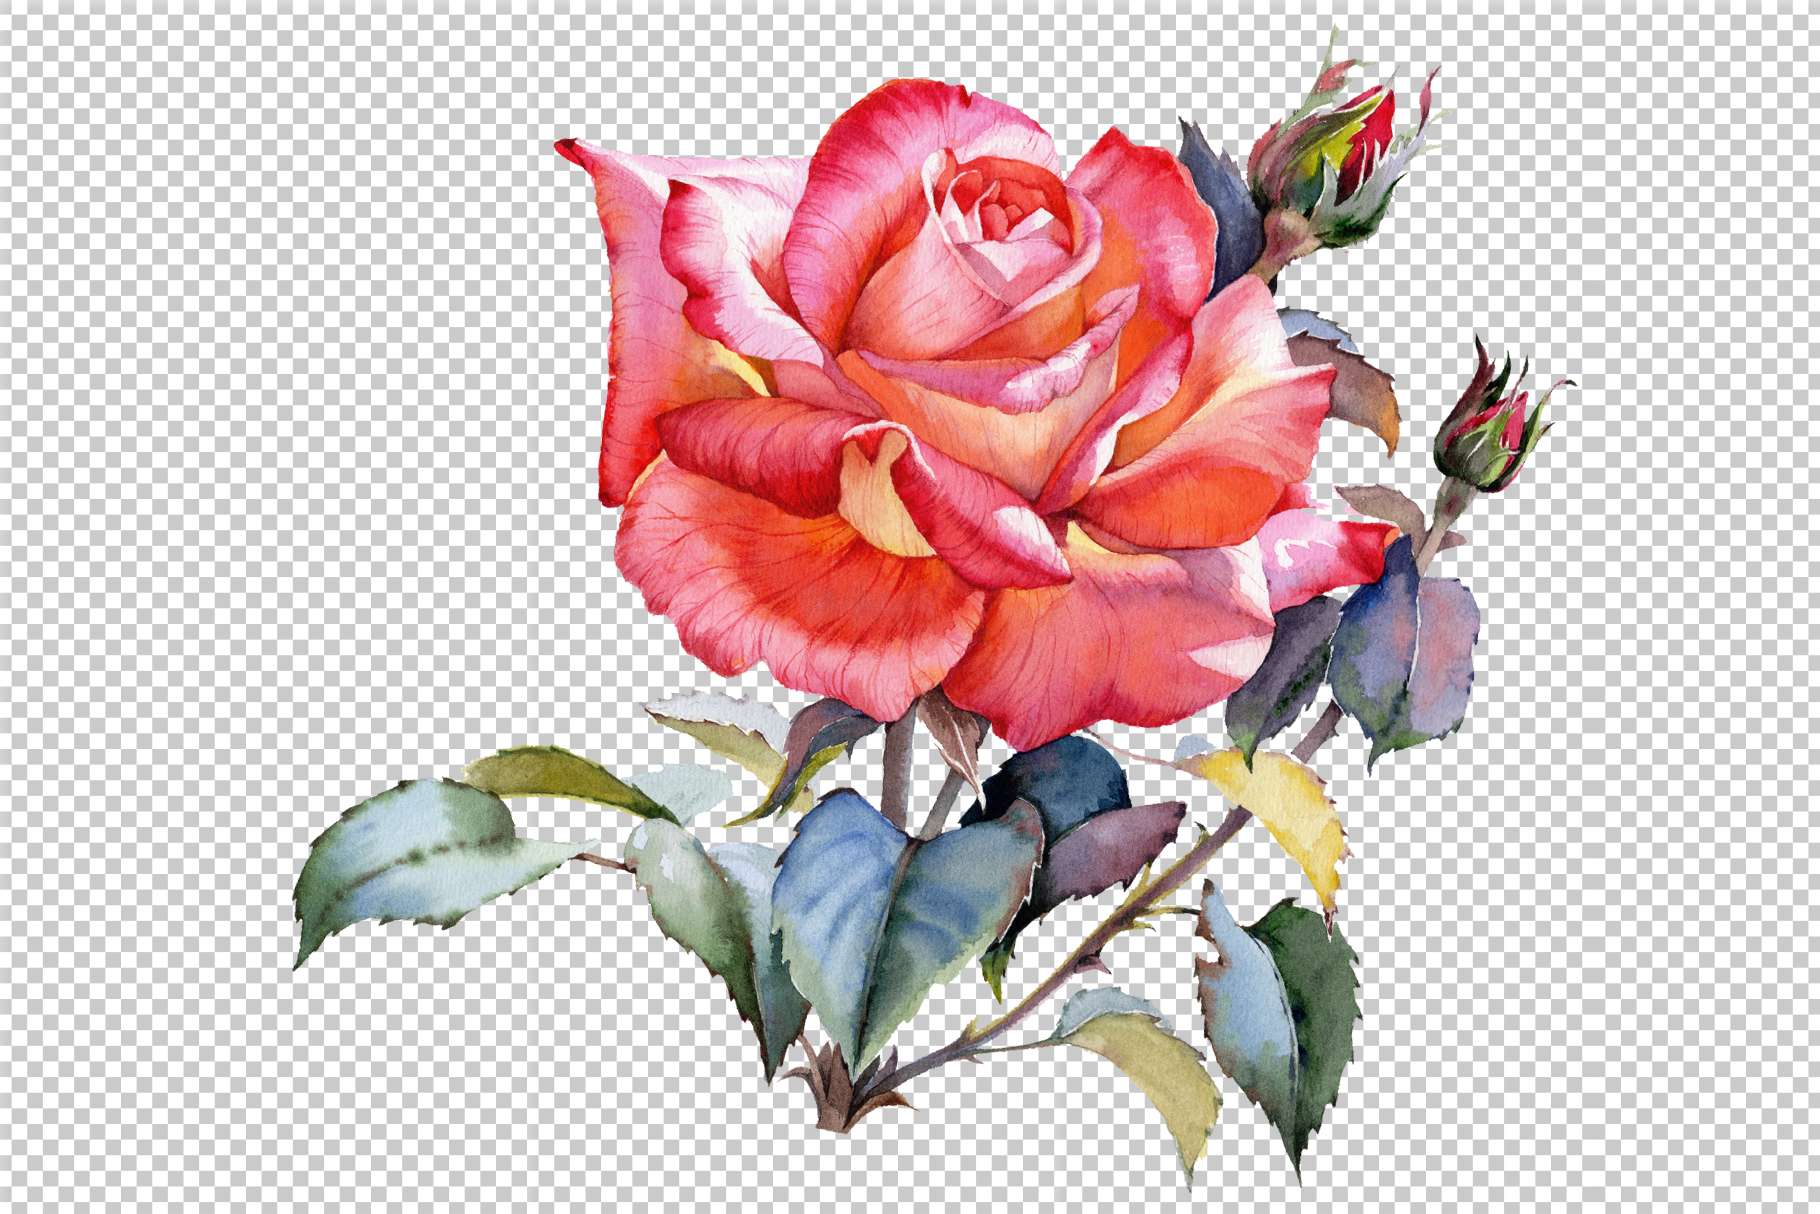 Red Rose Realistic Png Watercolor Set